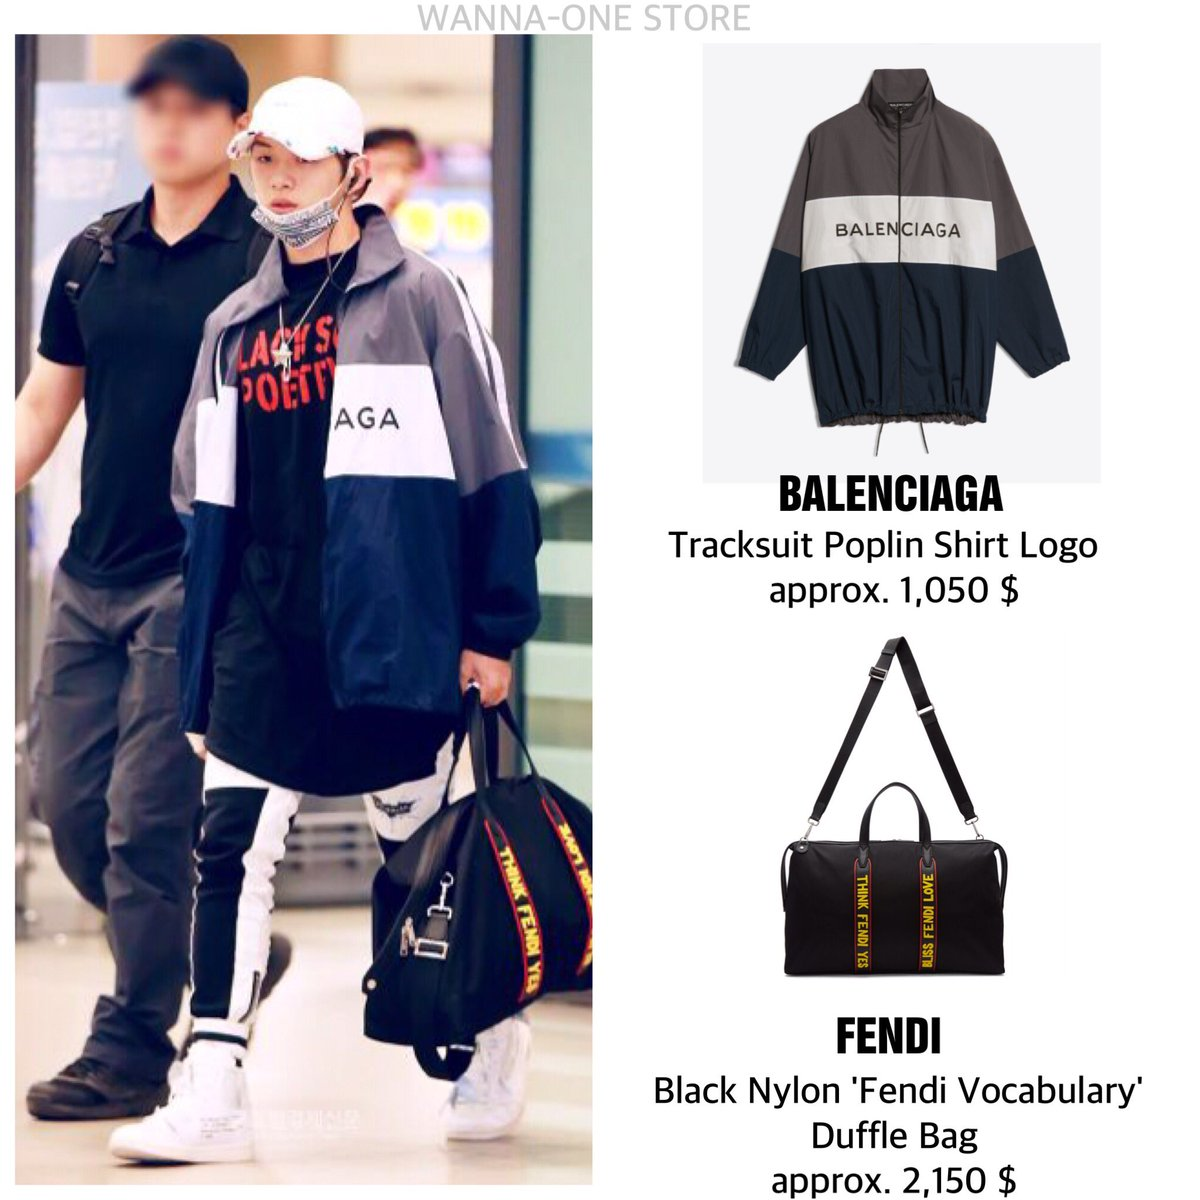 1,050   (Sold out online) FENDI   Black Nylon  Fendi Vocabulary  Duffle Bag  approx. 2,150   (Not available)  강다니엘  워너원  KangDaniel ... 8423b691be